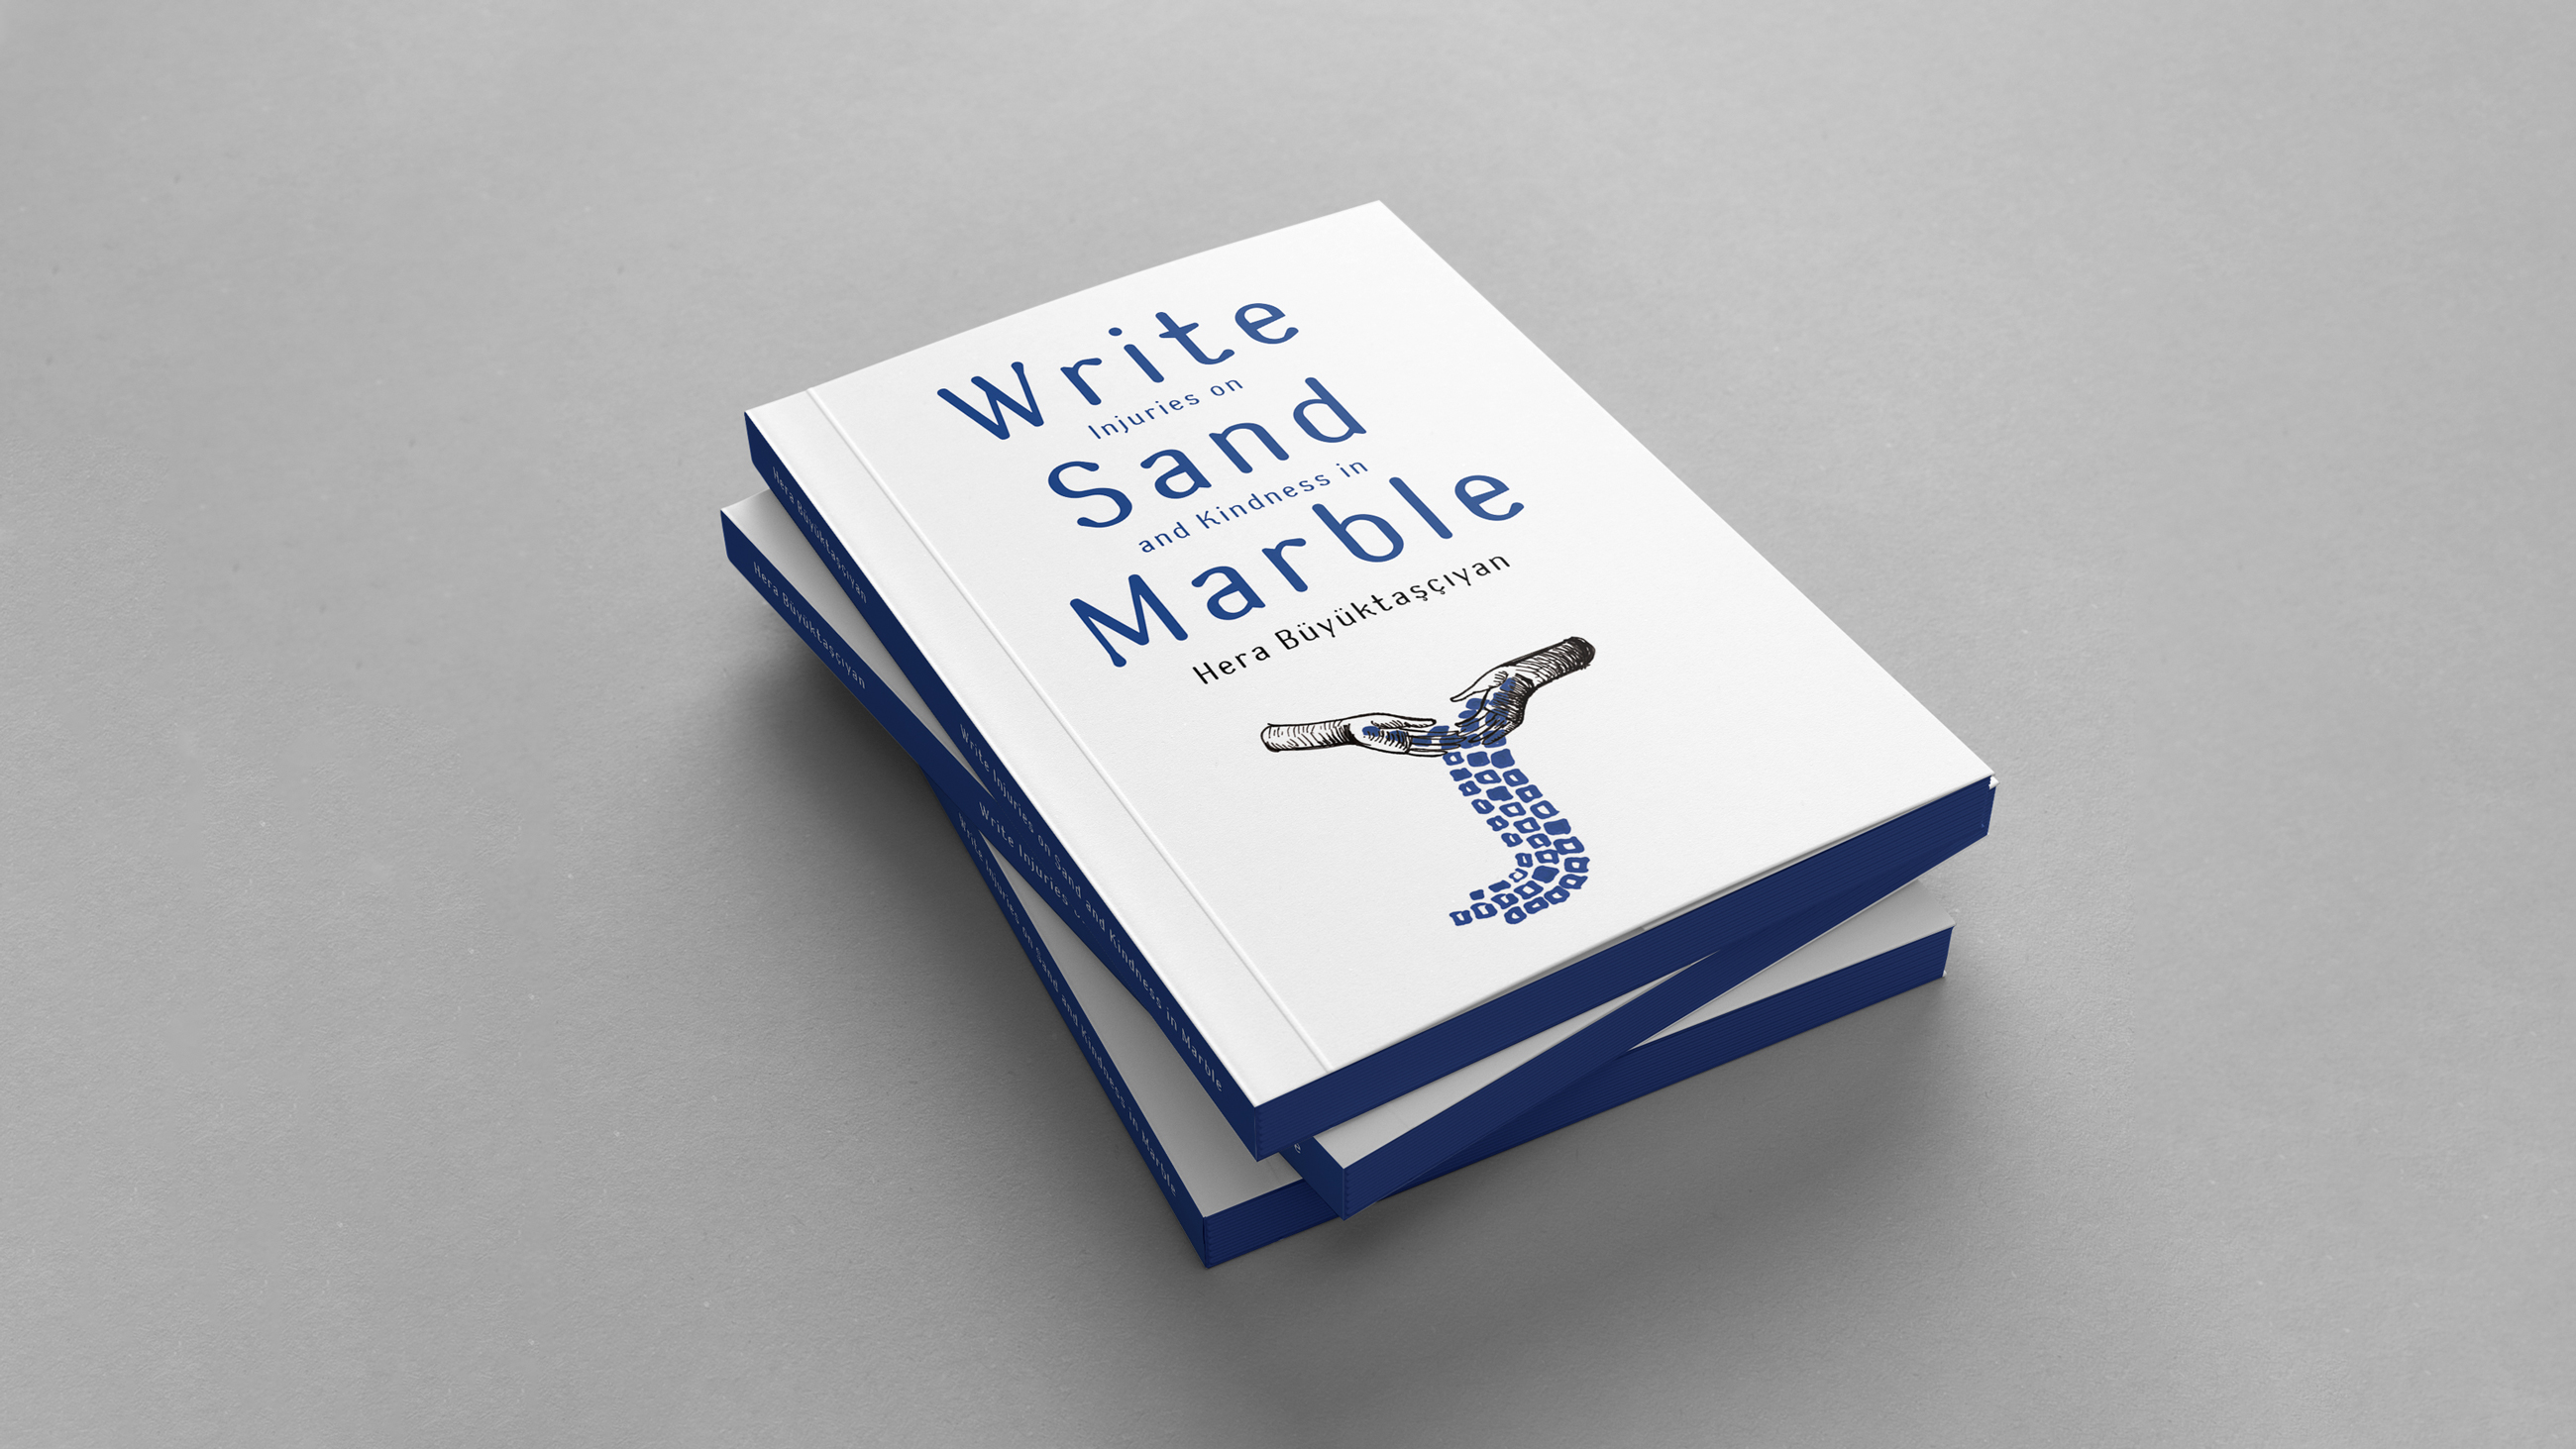 Write… Sand… Marble